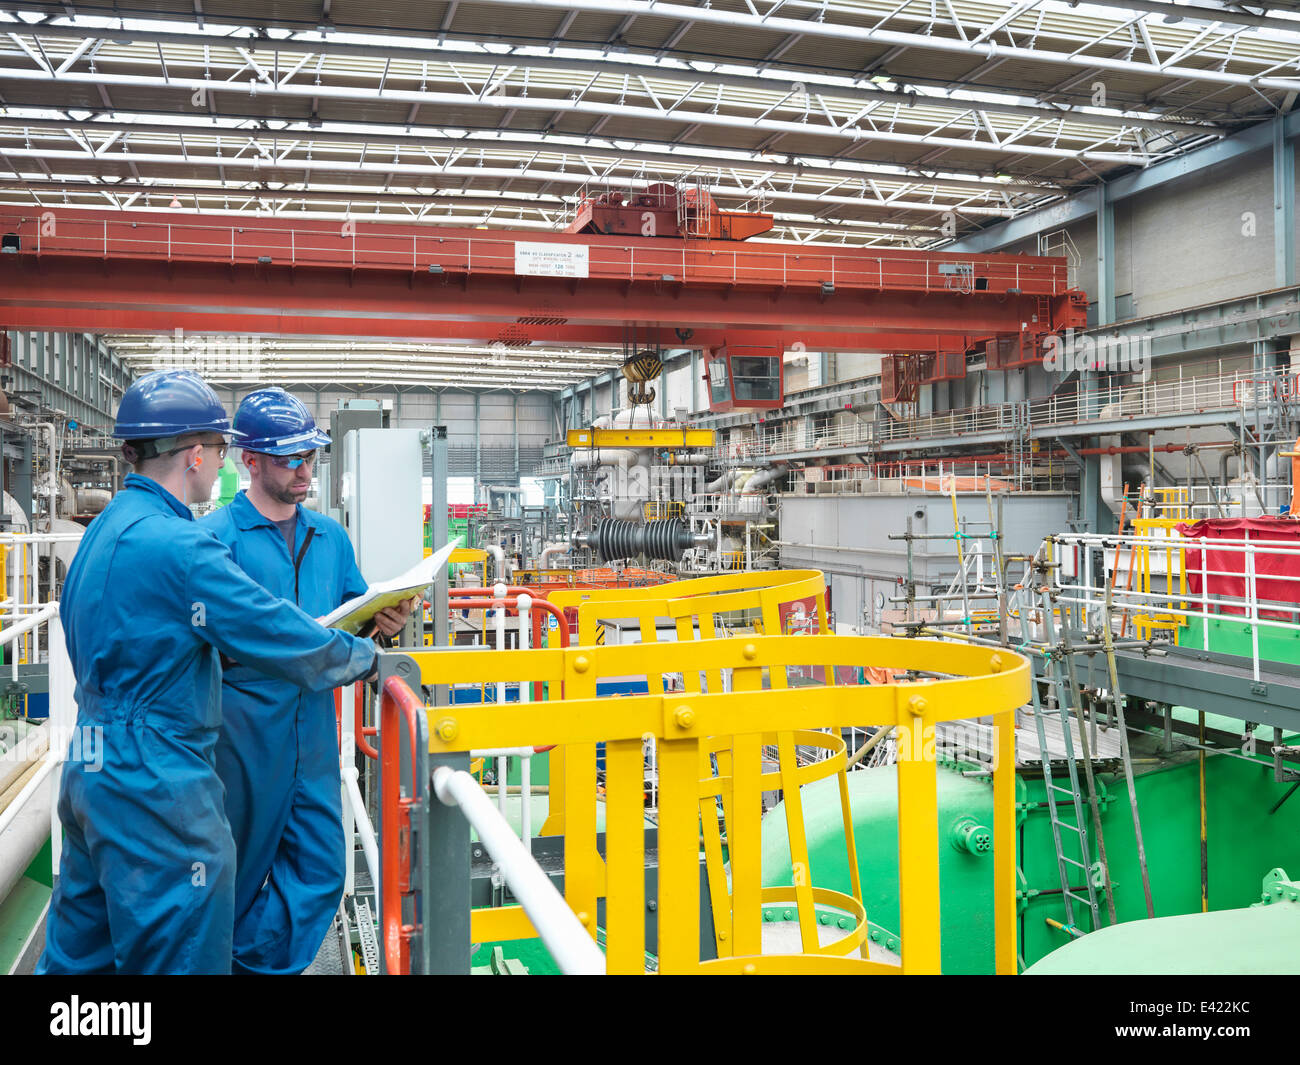 Engineers discussing notes on walkway during power station outage - Stock Image